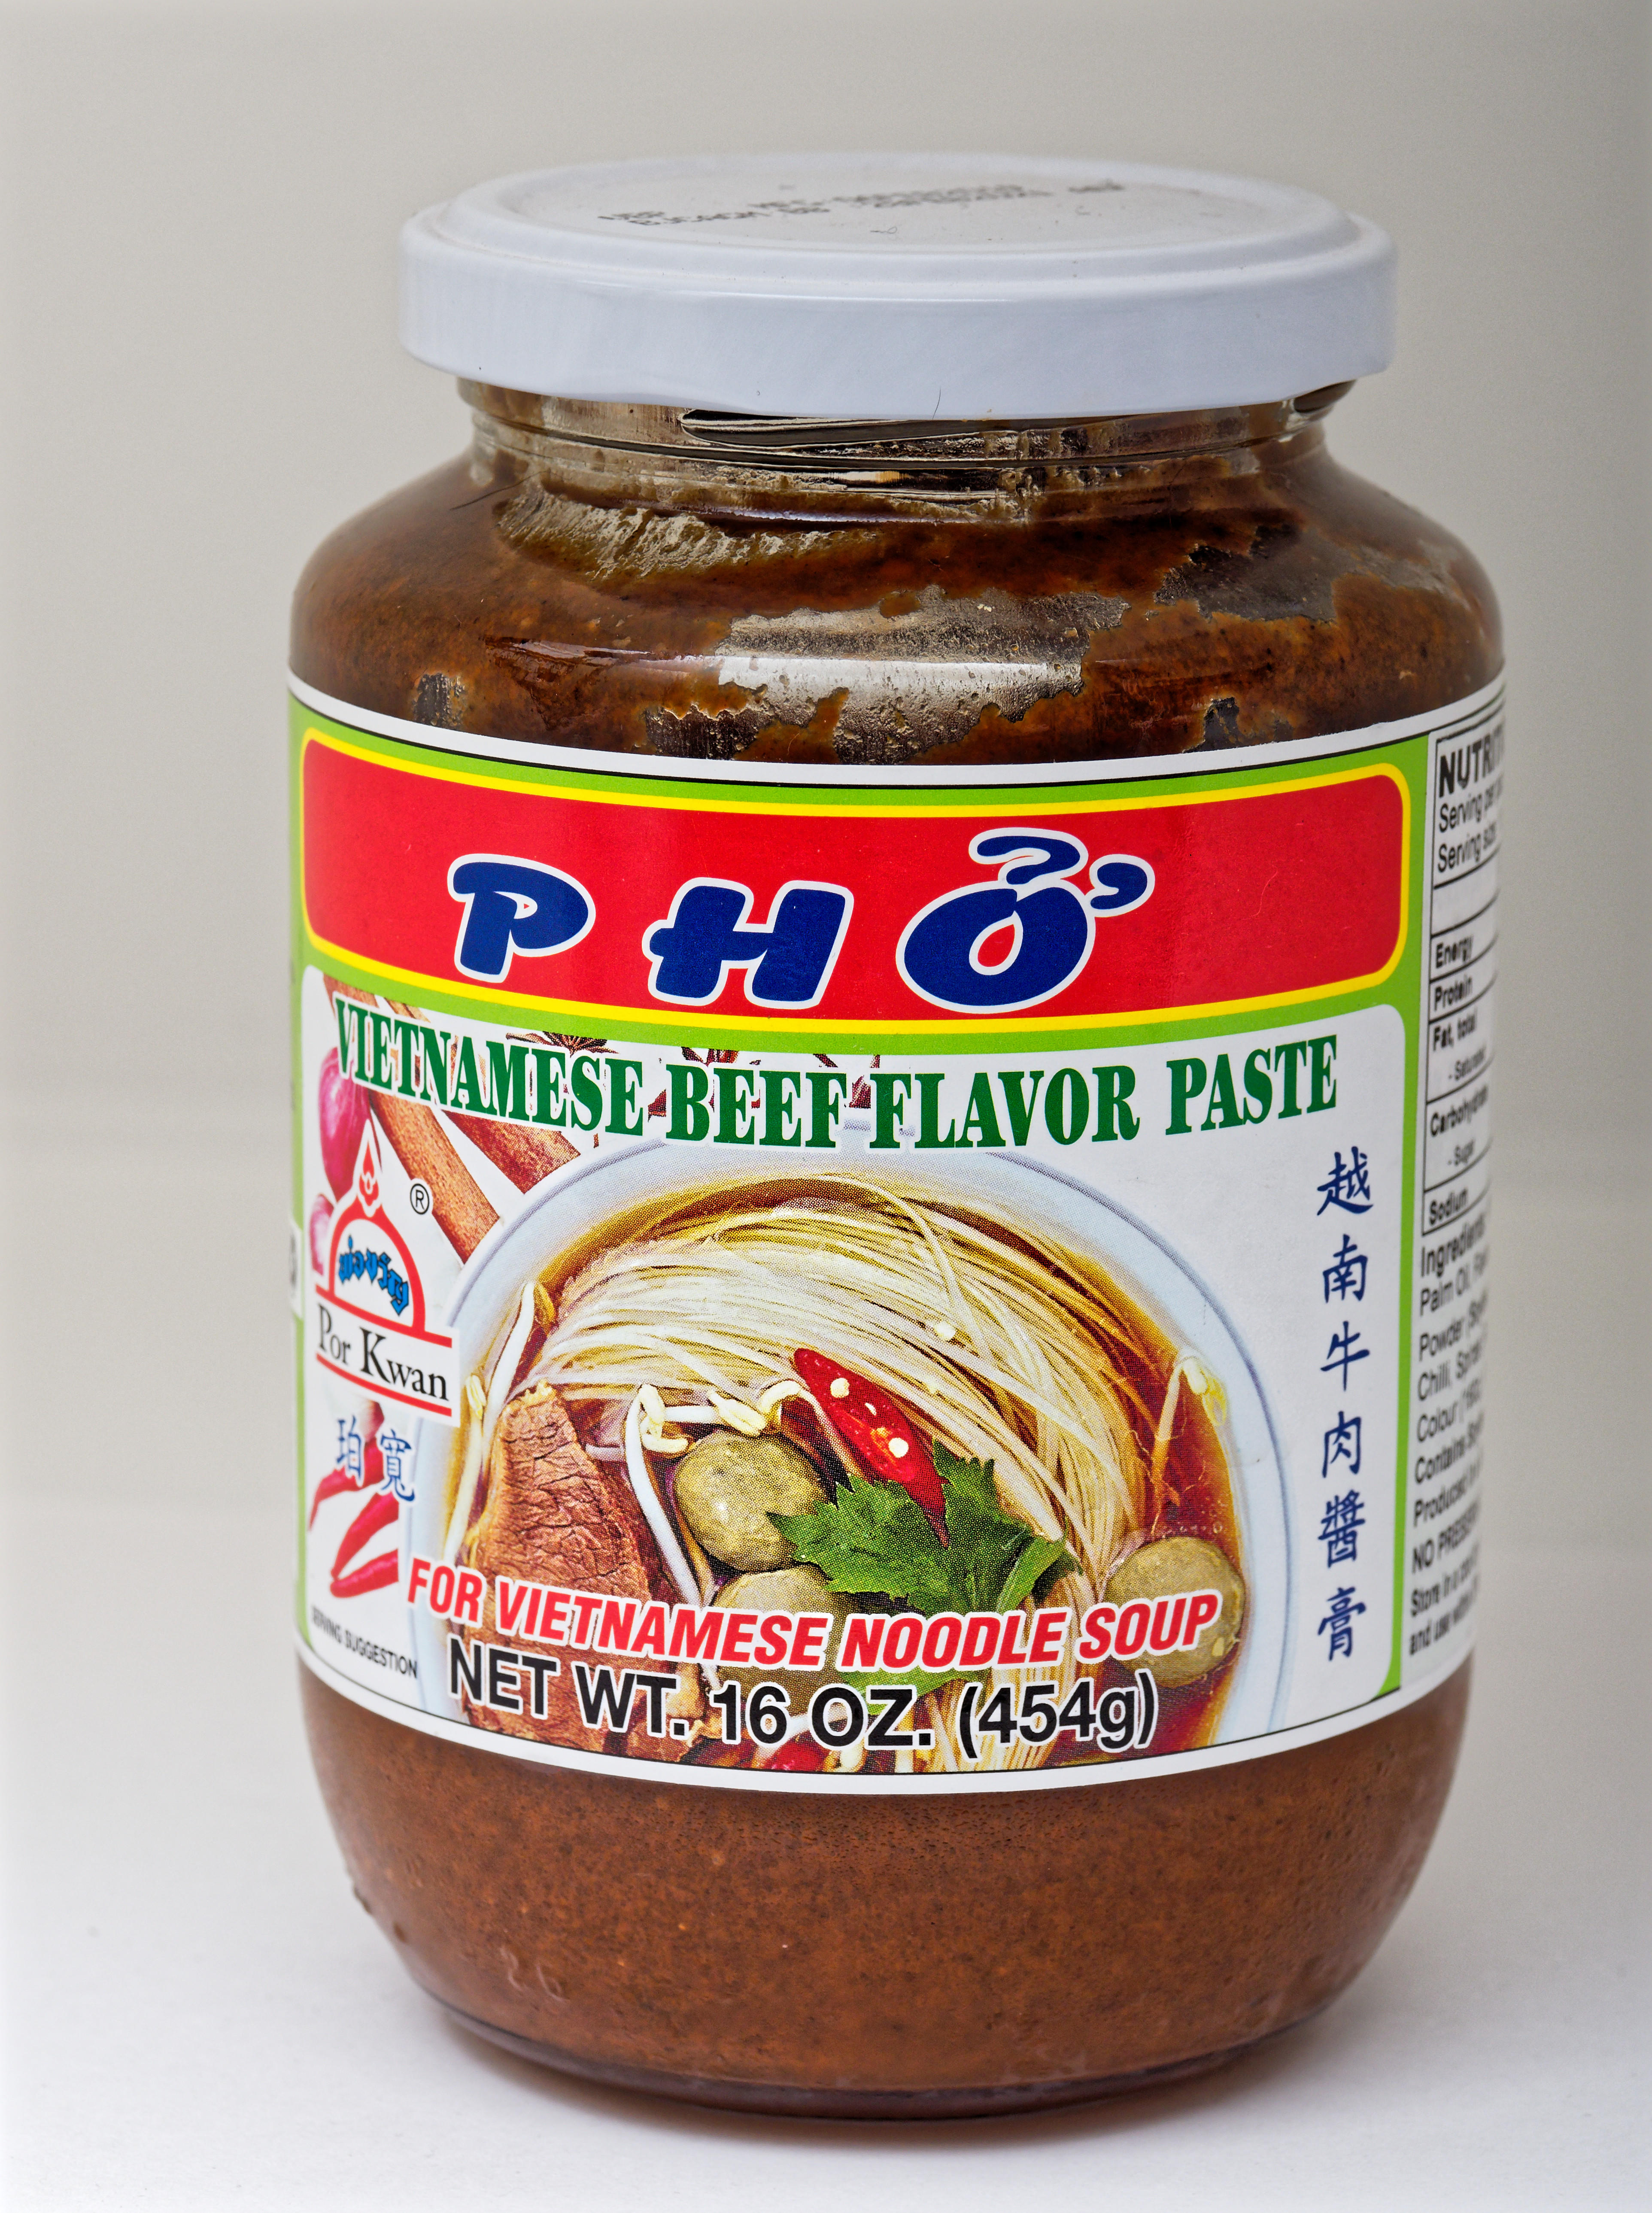 This should be Pho-1.jpeg.  Is it missing?